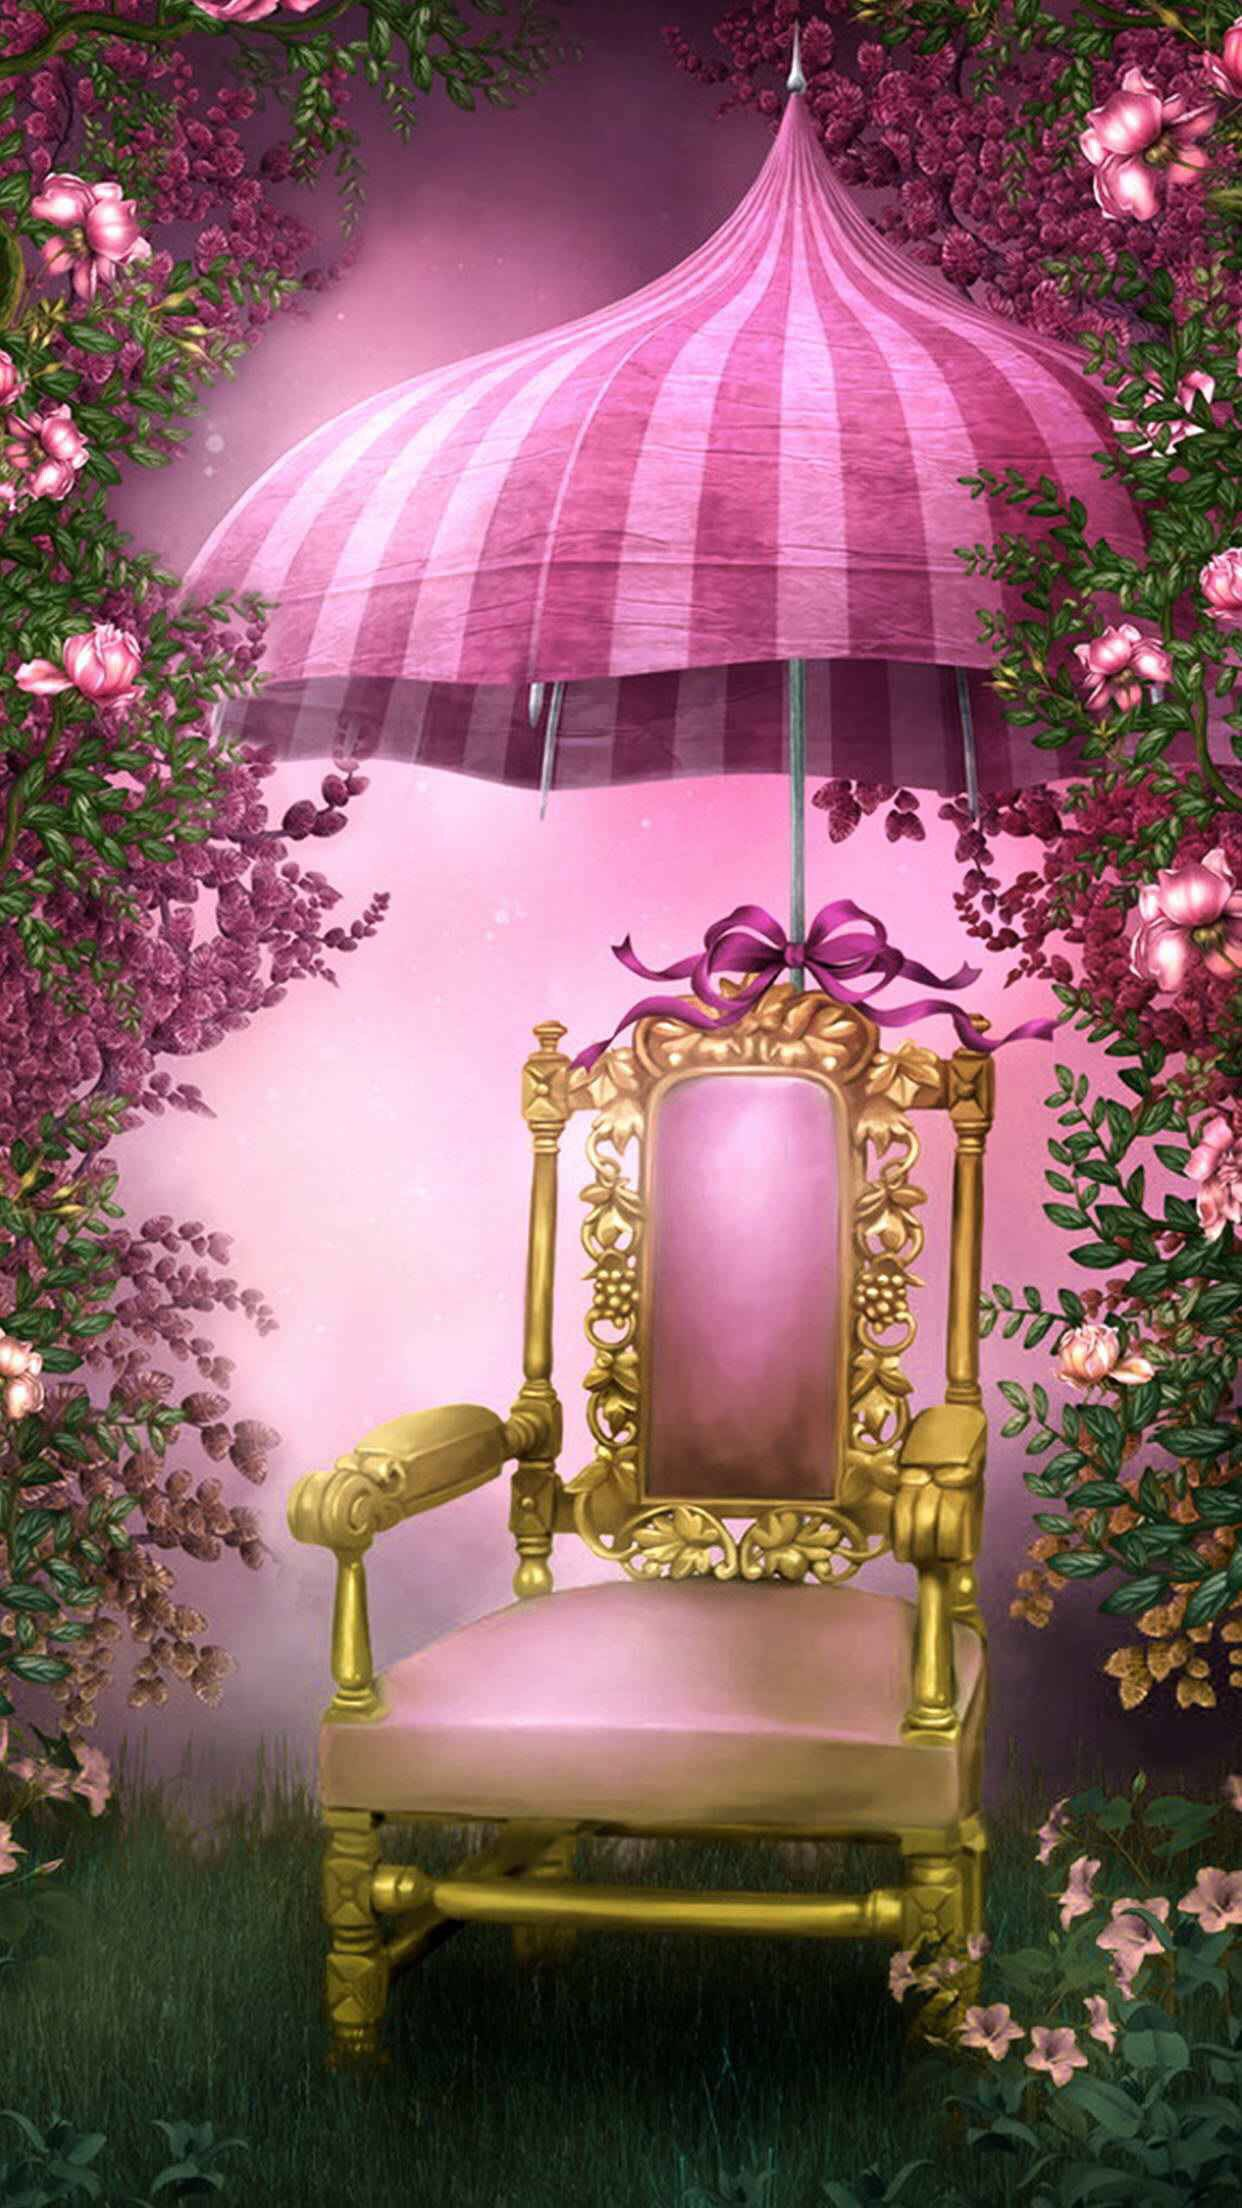 Princess Lock Screen Studio Background Images Photoshop Backgrounds Free Studio Background